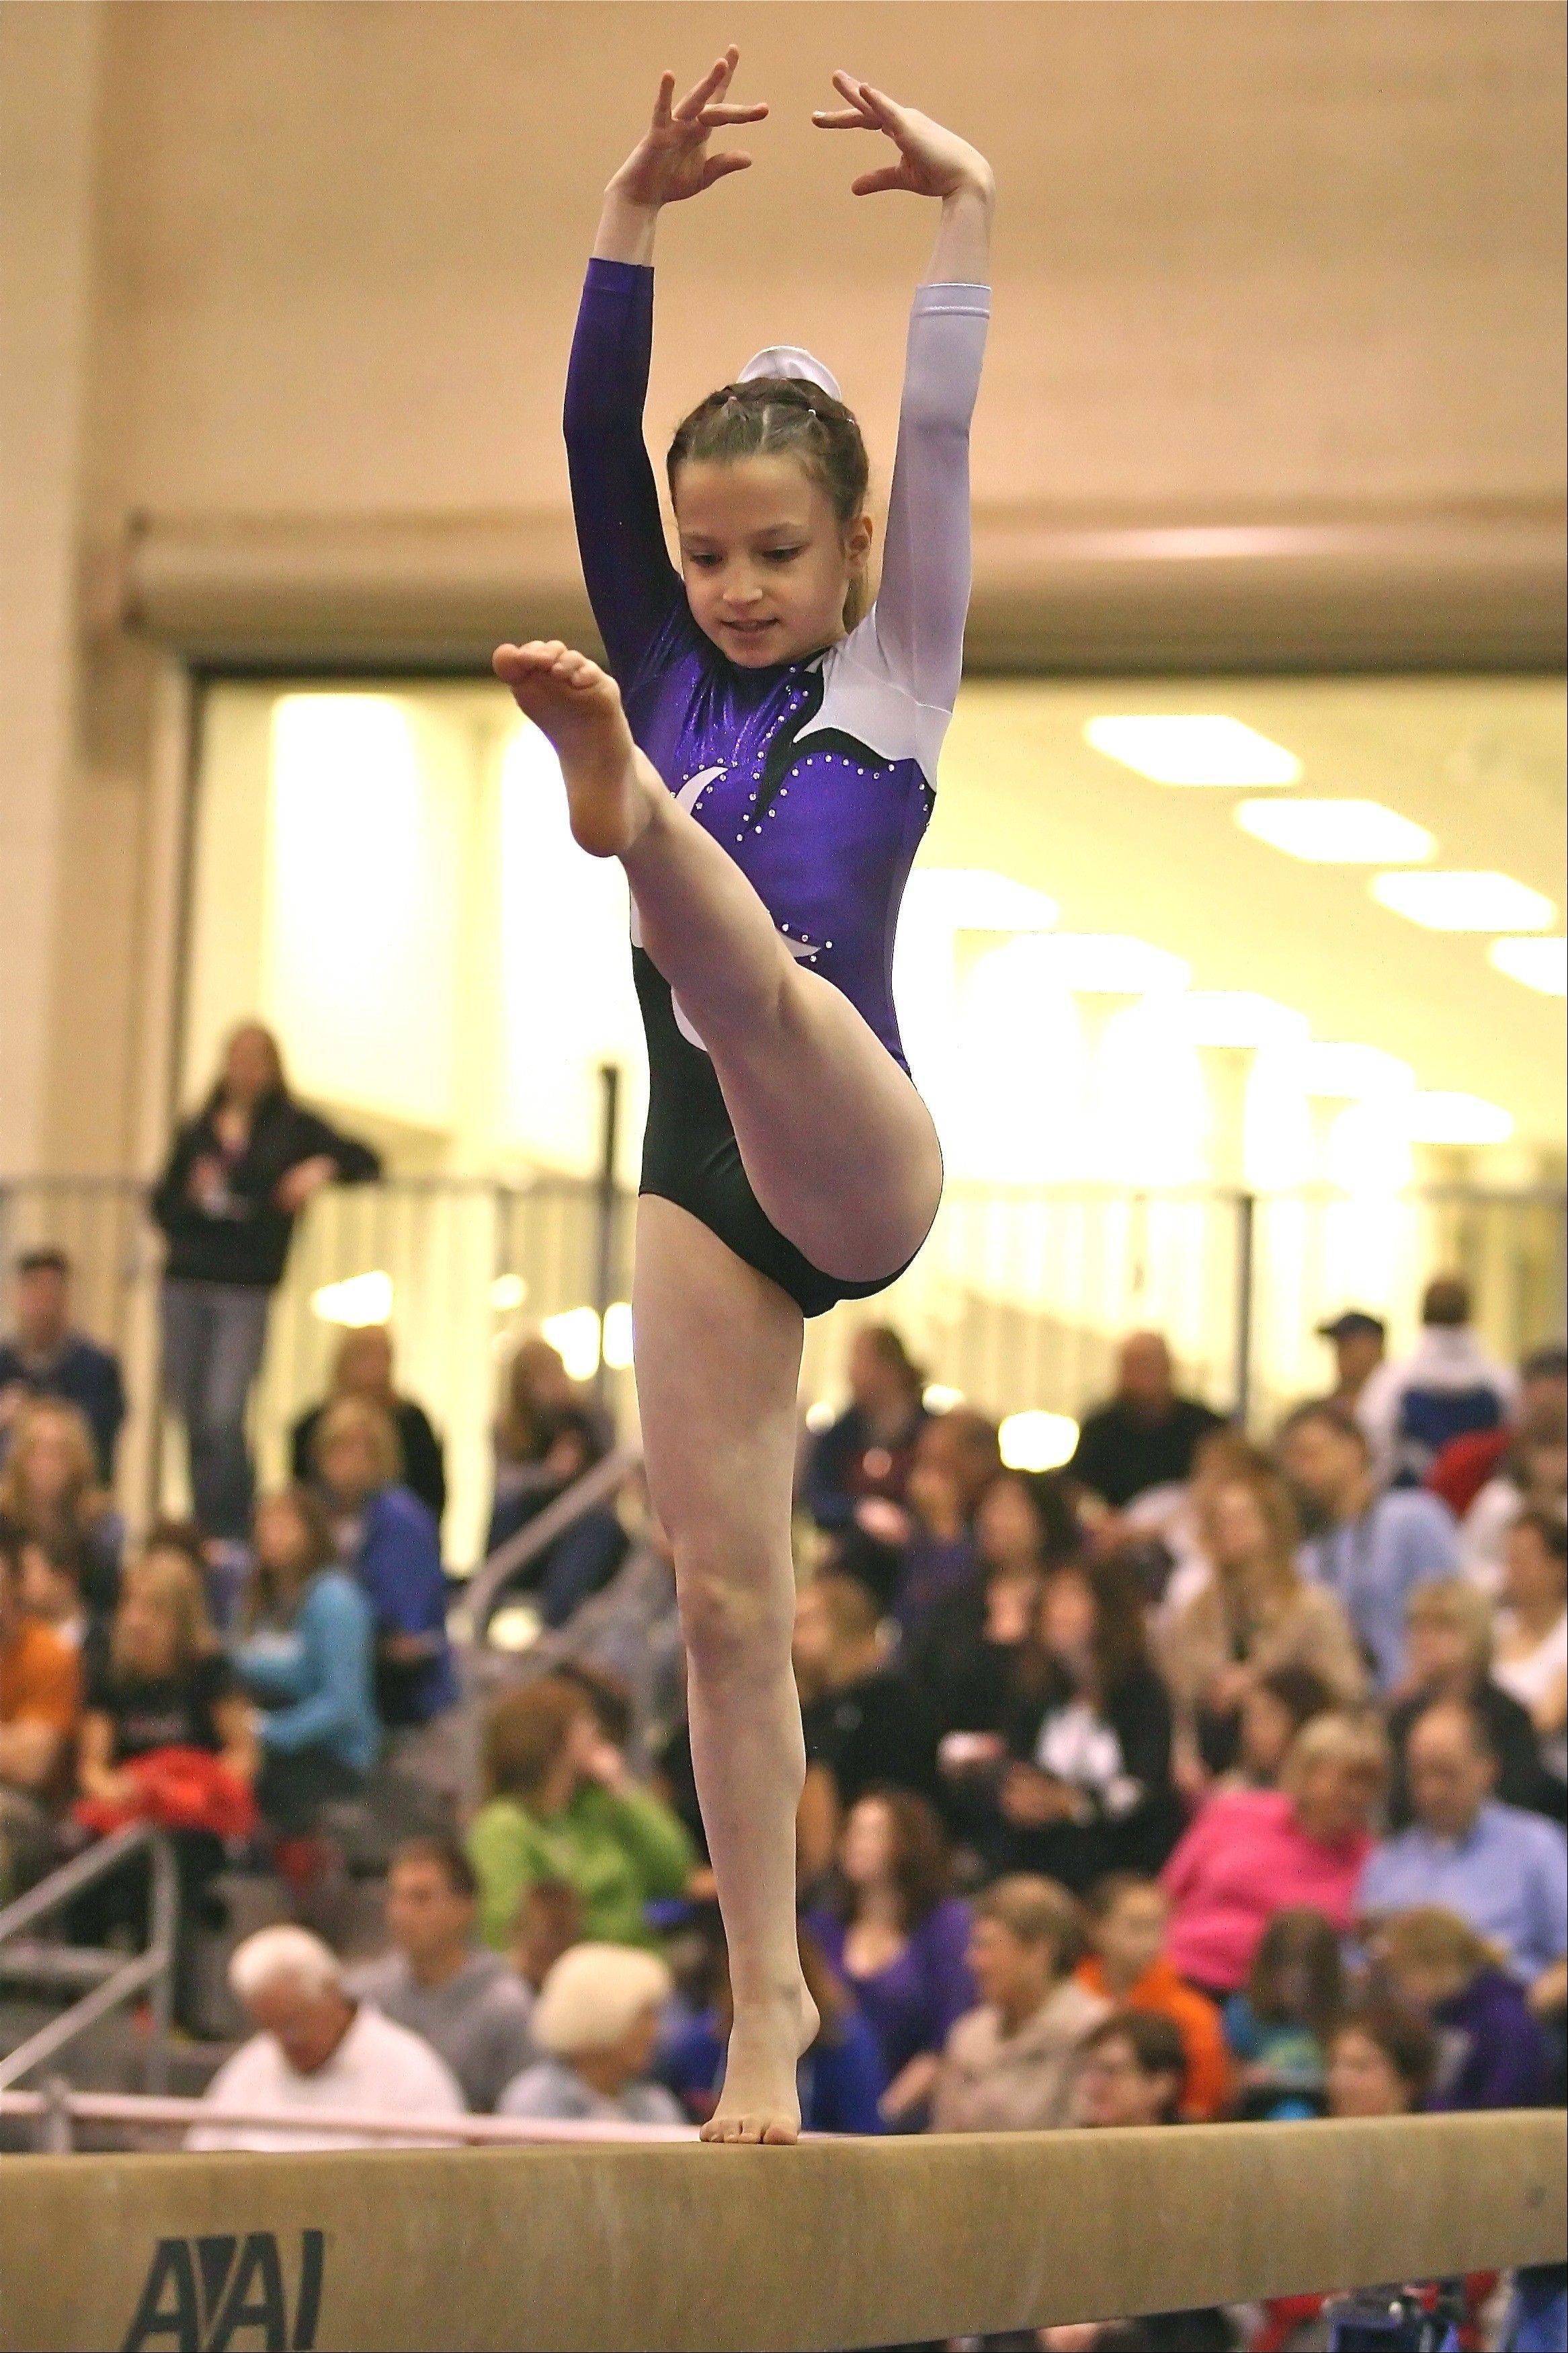 Showing perfect poise and balance, Ultimate Gymnastics' Gianna Pasquesi performs her beam routine at the Level 5 State meet. Gianna won silver on the event but took the gold medal on the vault in the Junior B age group. She was one of five girls from the Gurnee-based gym to win State titles at the meet, held recently in Peoria